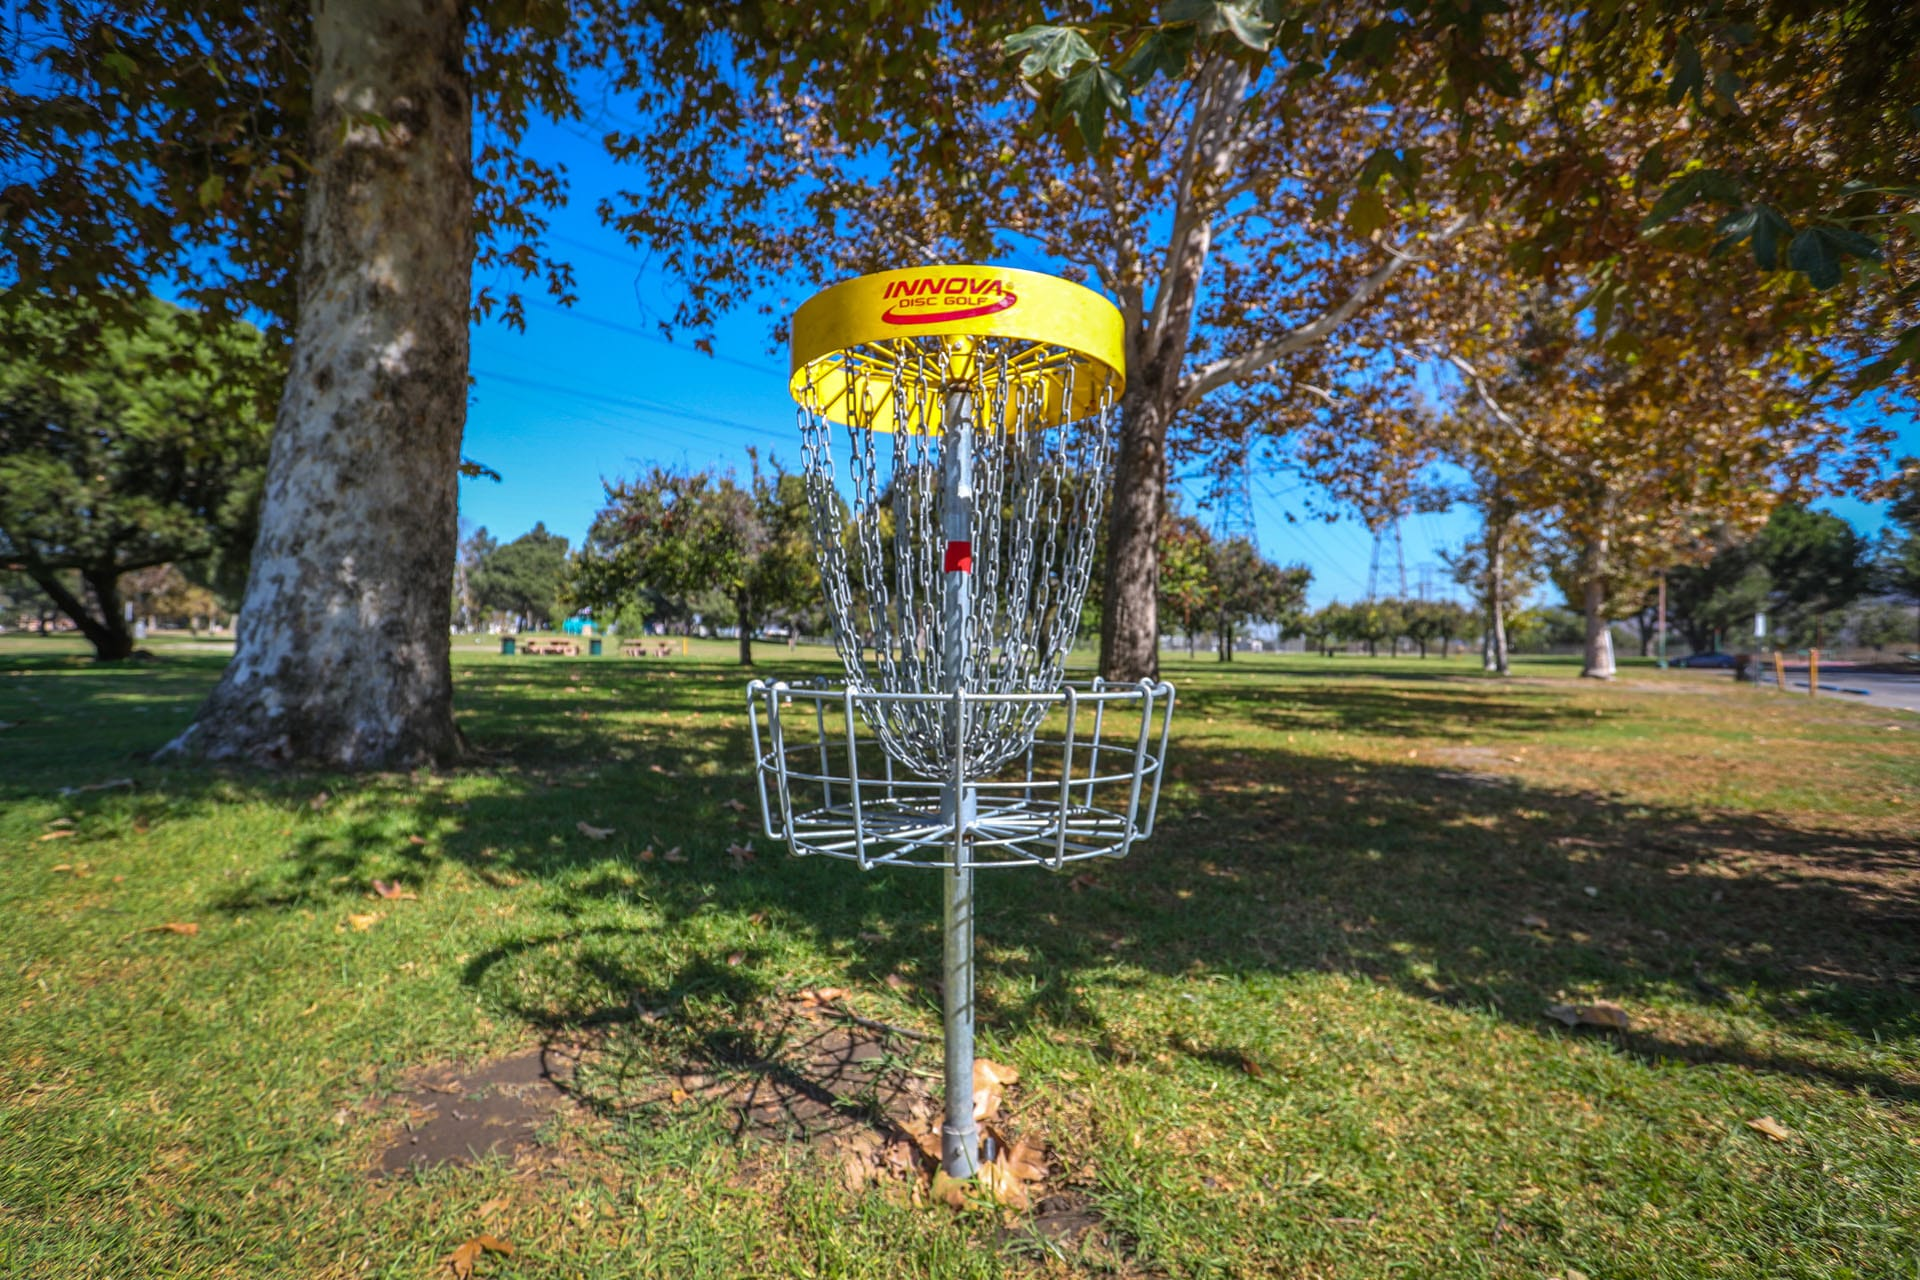 Disc golf target and basket